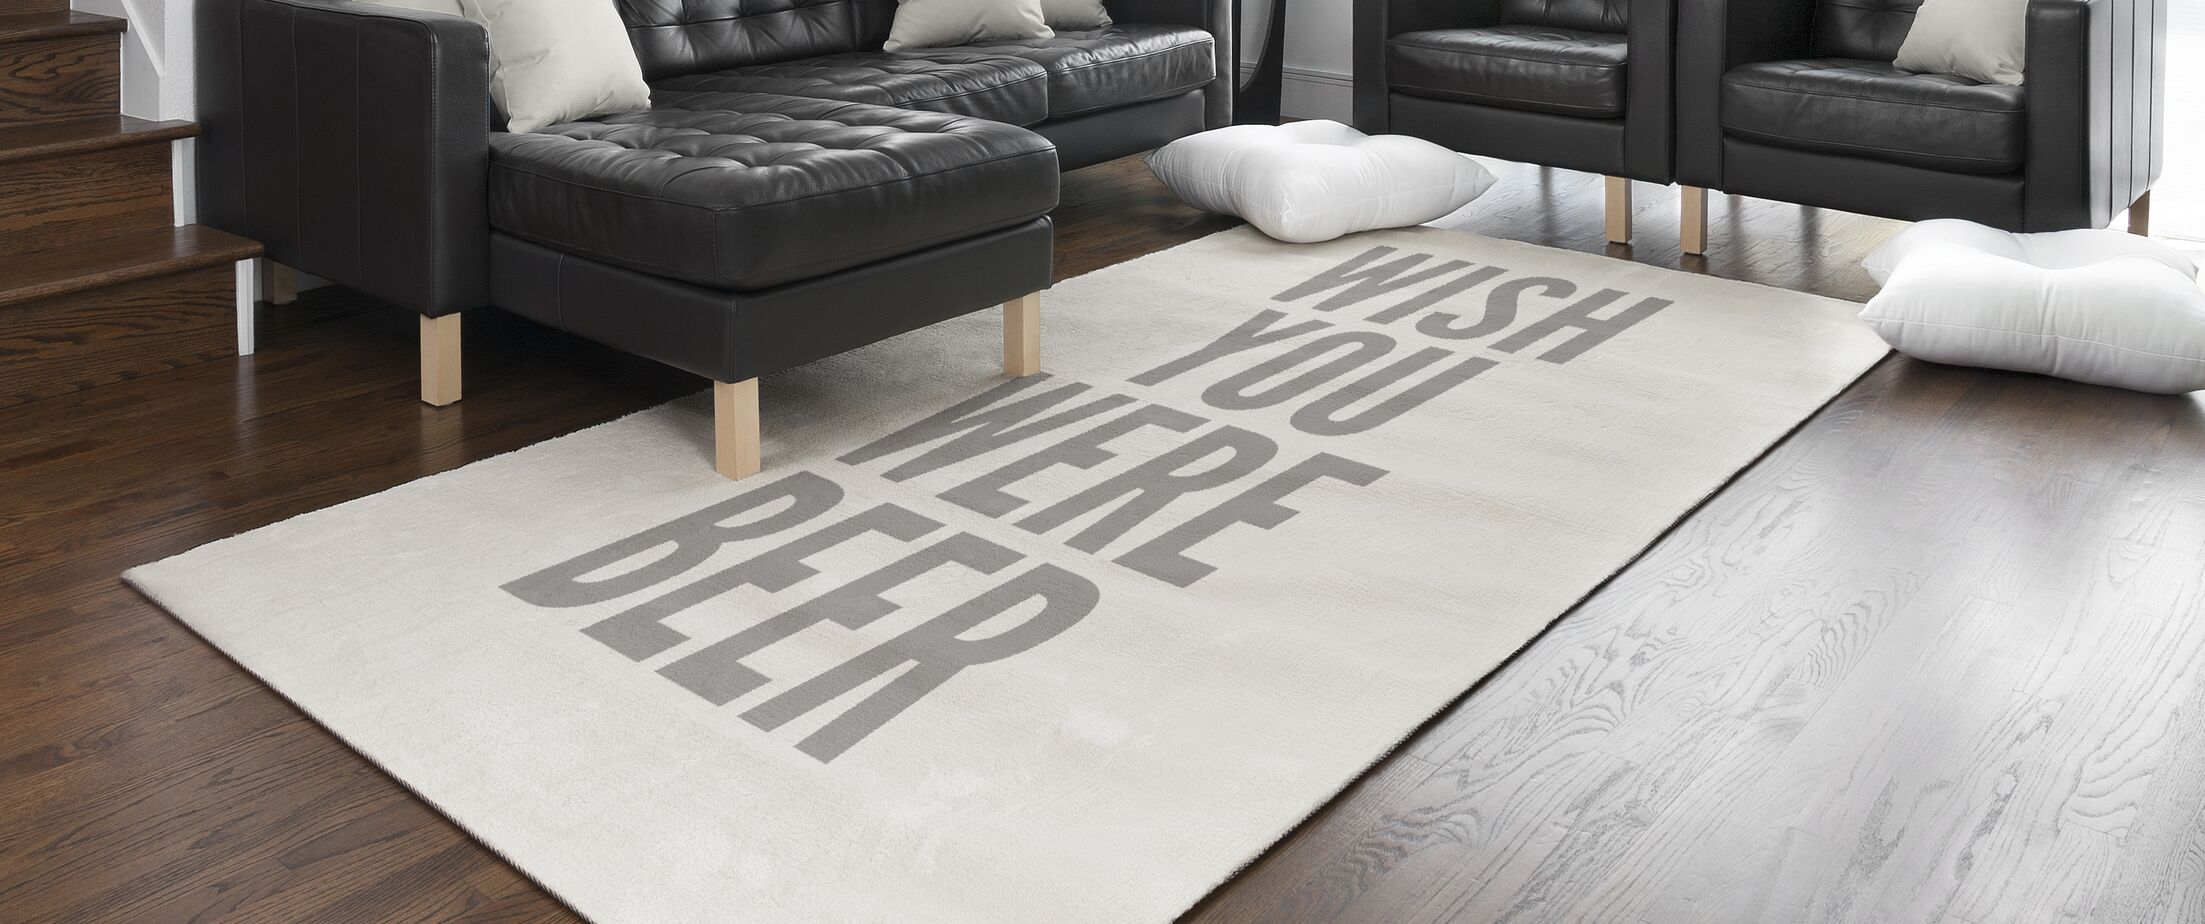 Jalynn Wish You Were Beer Gray/Beige Area Rug Rug Size: Rectangle 2' x 3'